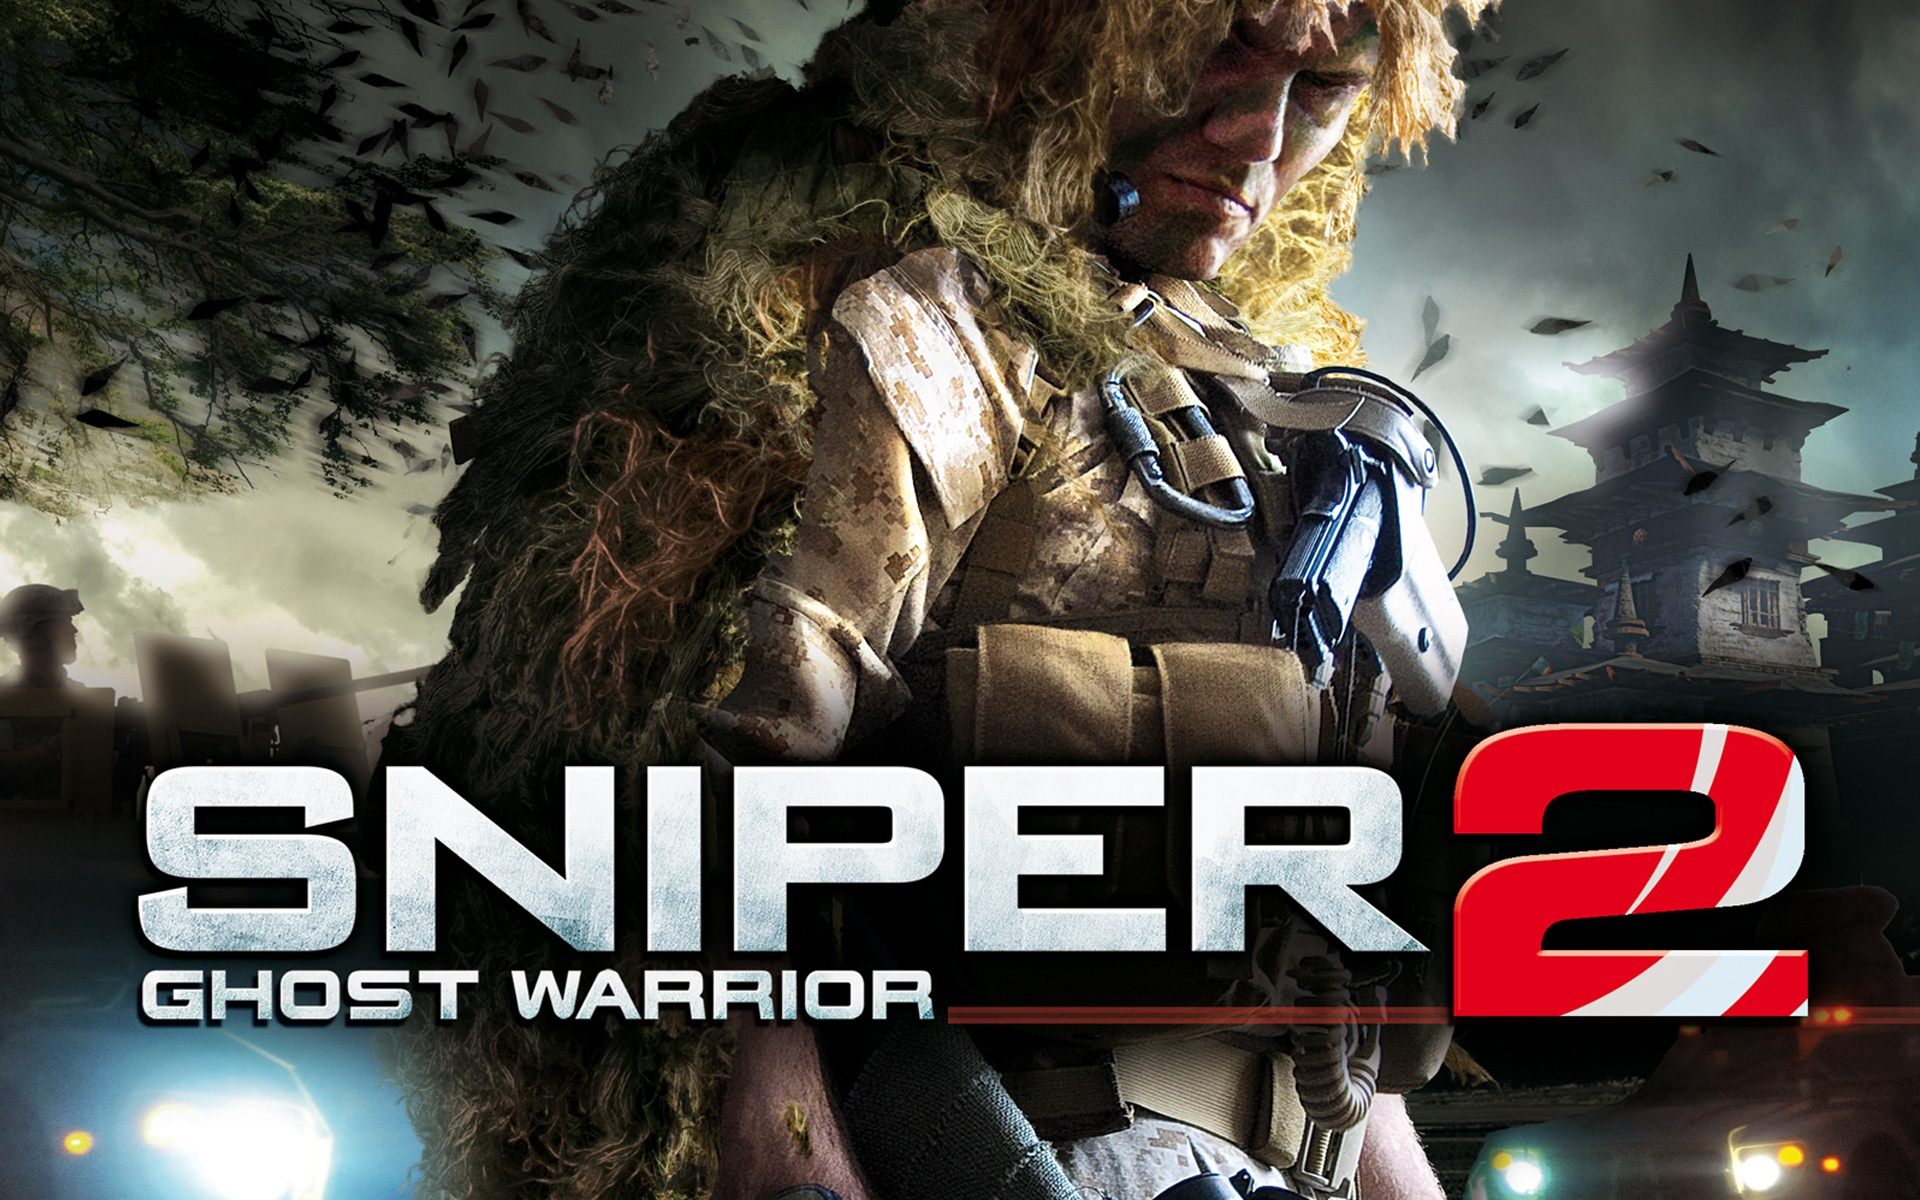 Sniper Ghost Warrior 2 – PS3